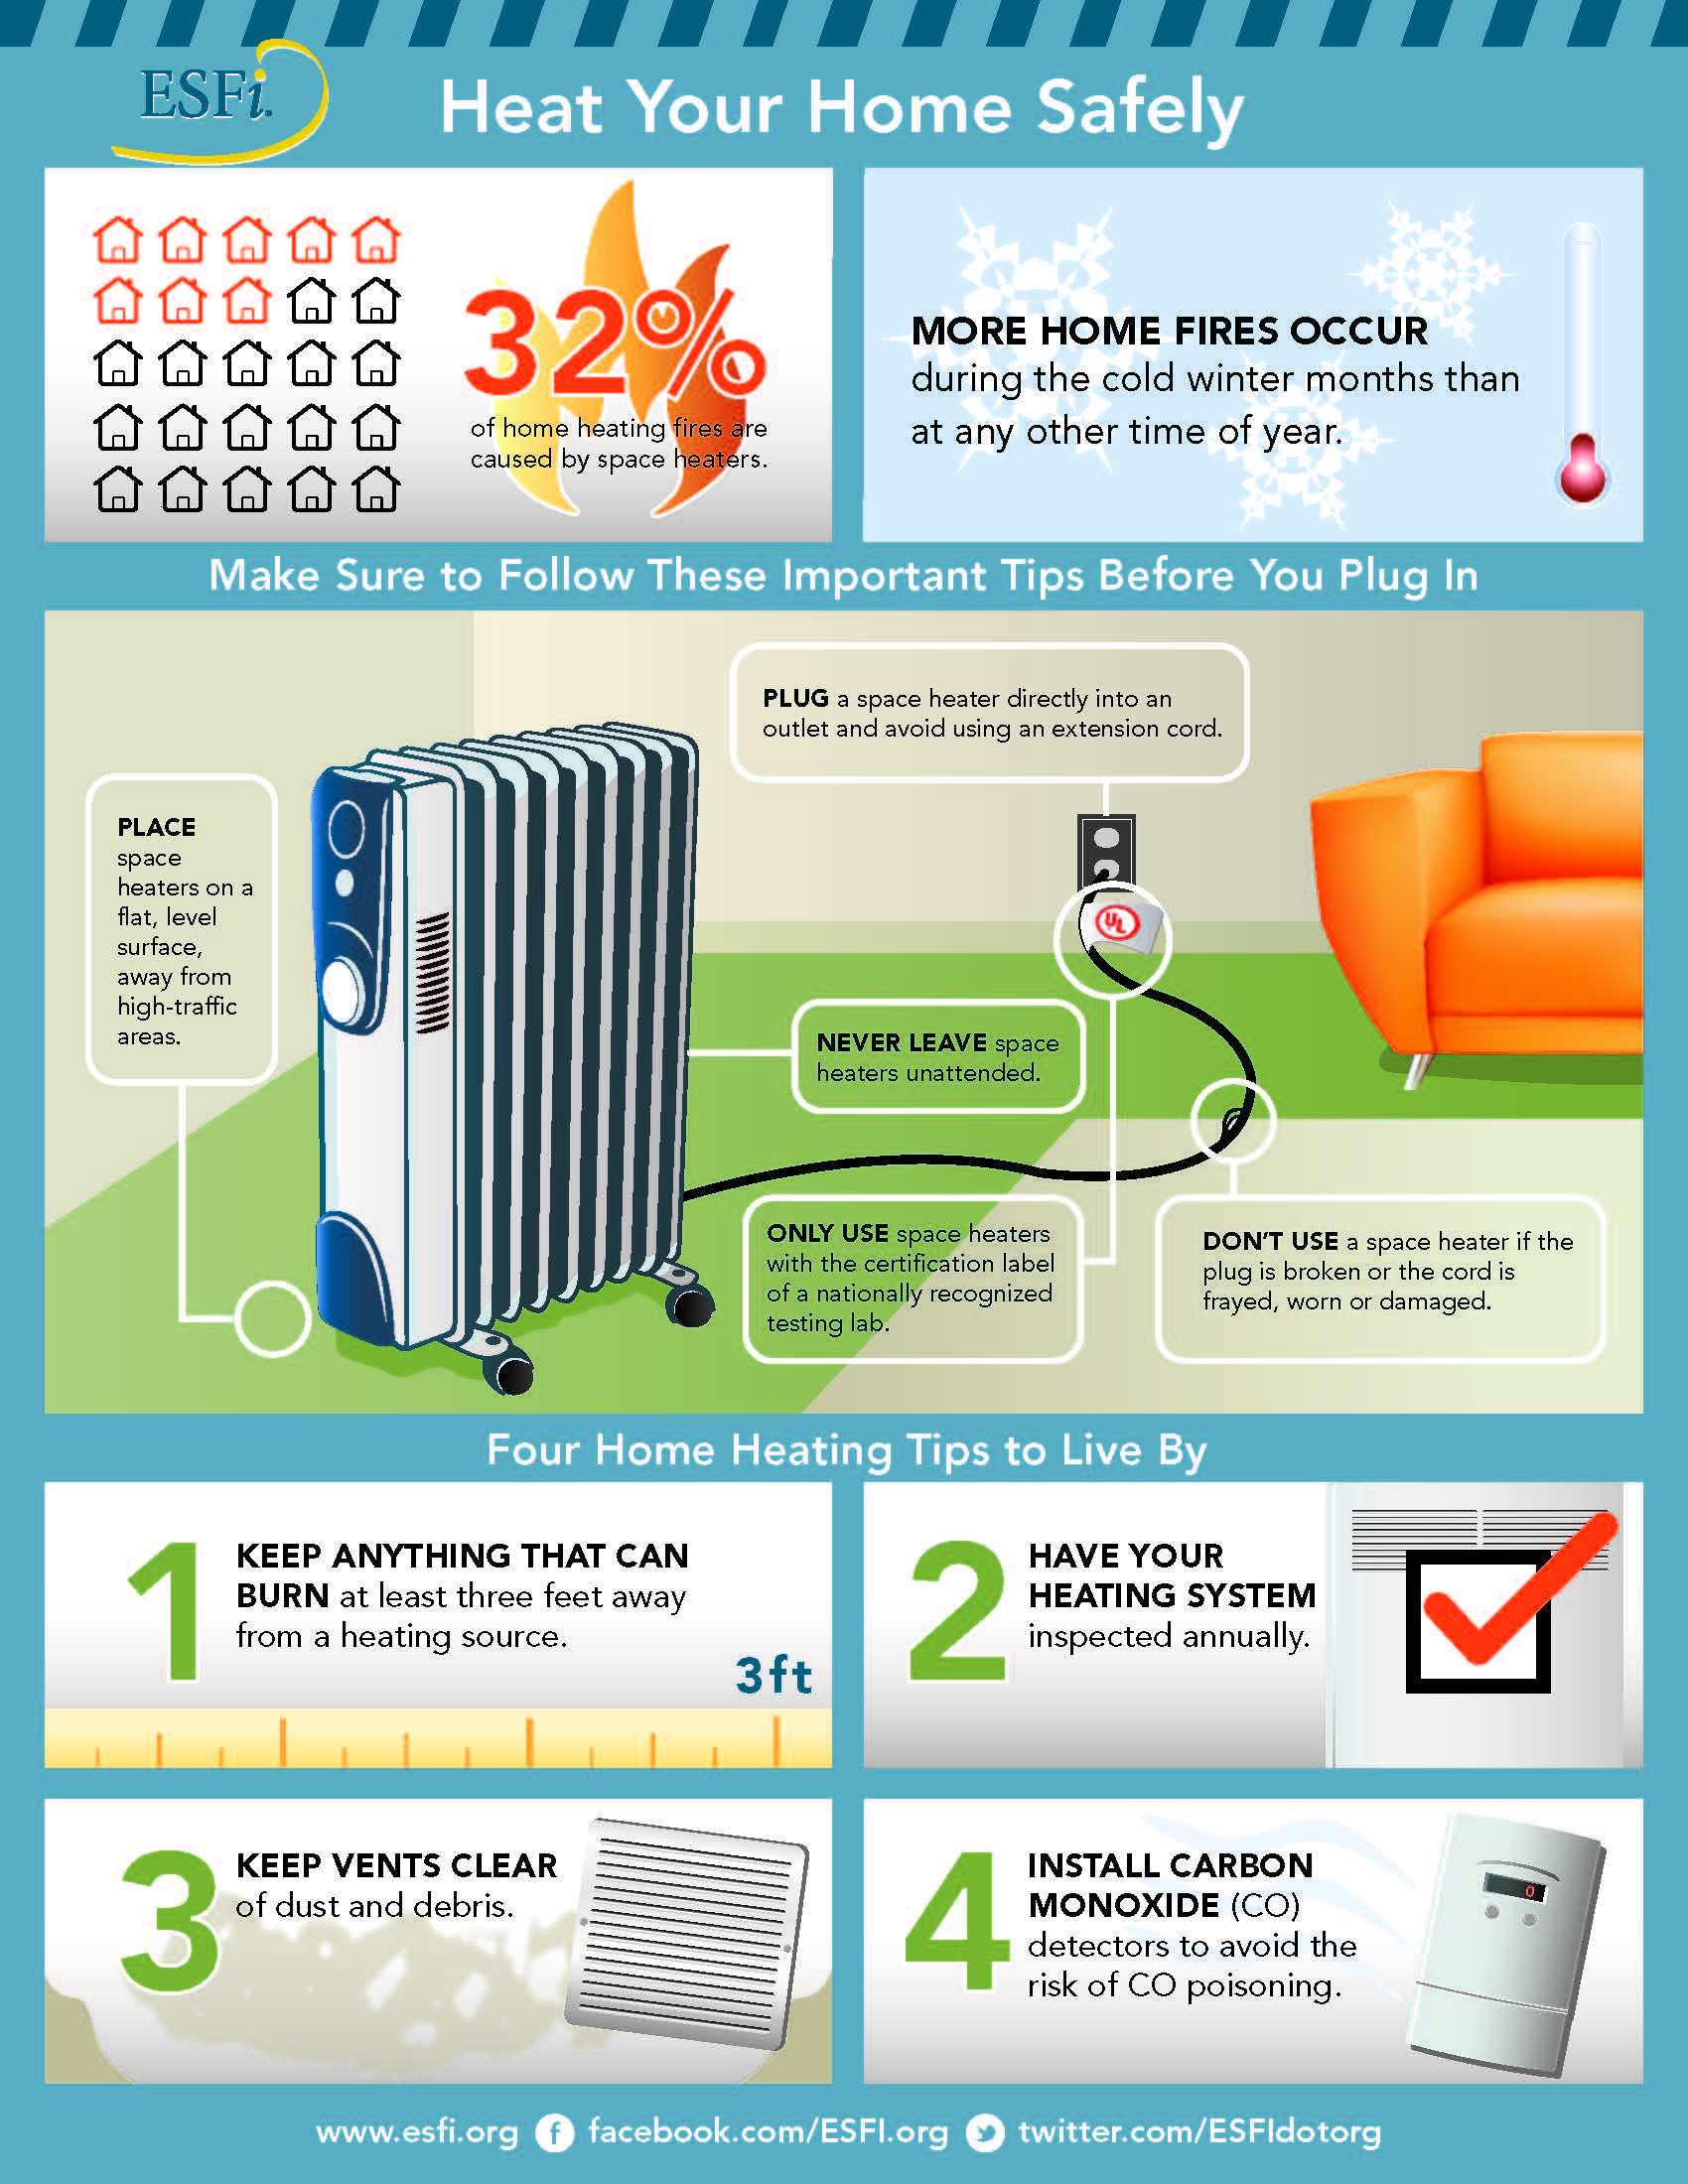 Fight the frigid weather and safely heat your home with